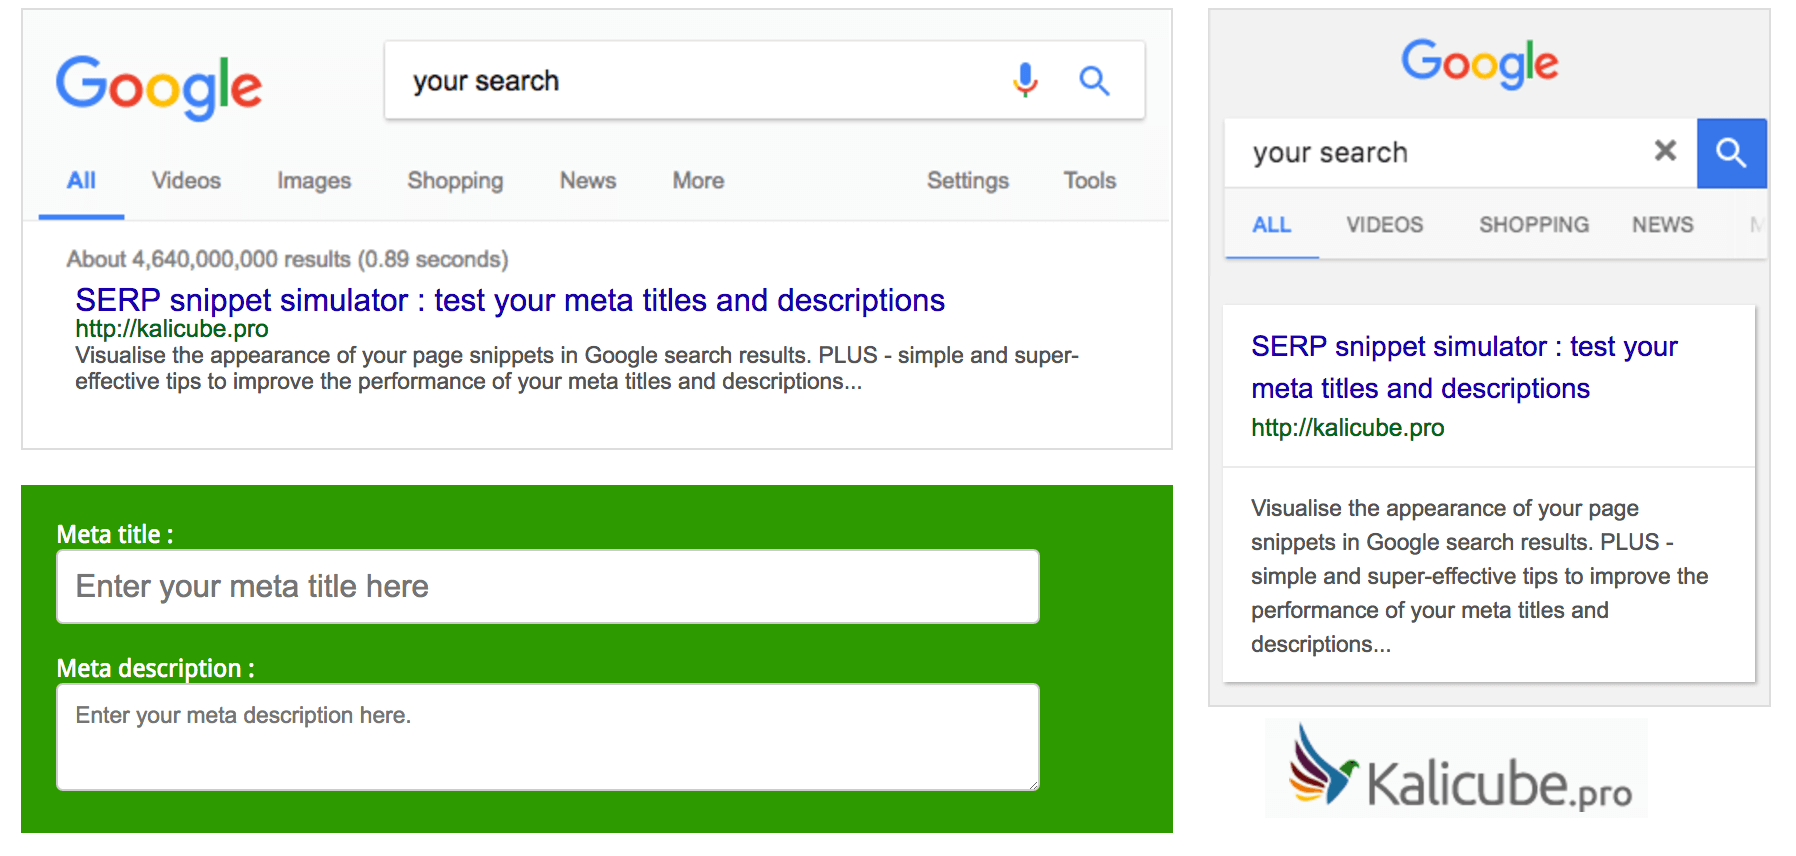 Kalicube.pro SERP Snippet Simulator